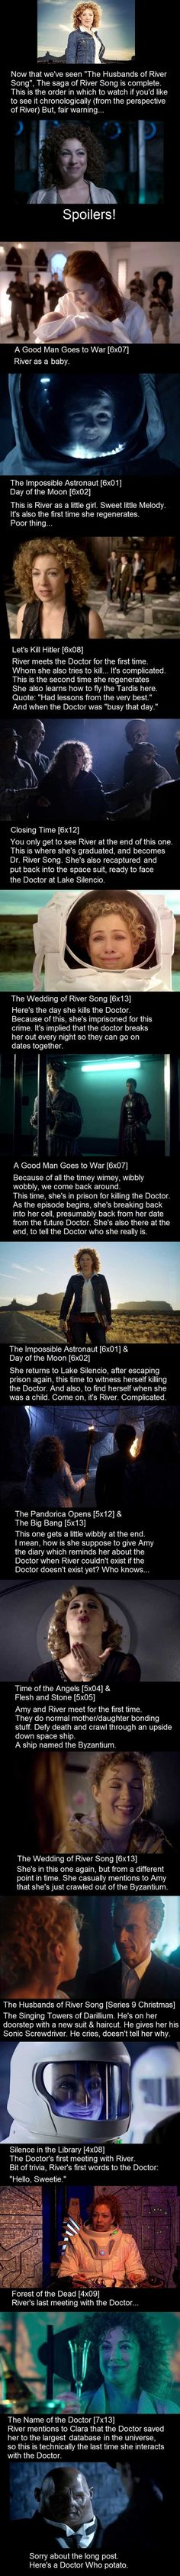 River Song's Timeline. Watch in this order if you'd like to see River's journey in Doctor Who - Imgur